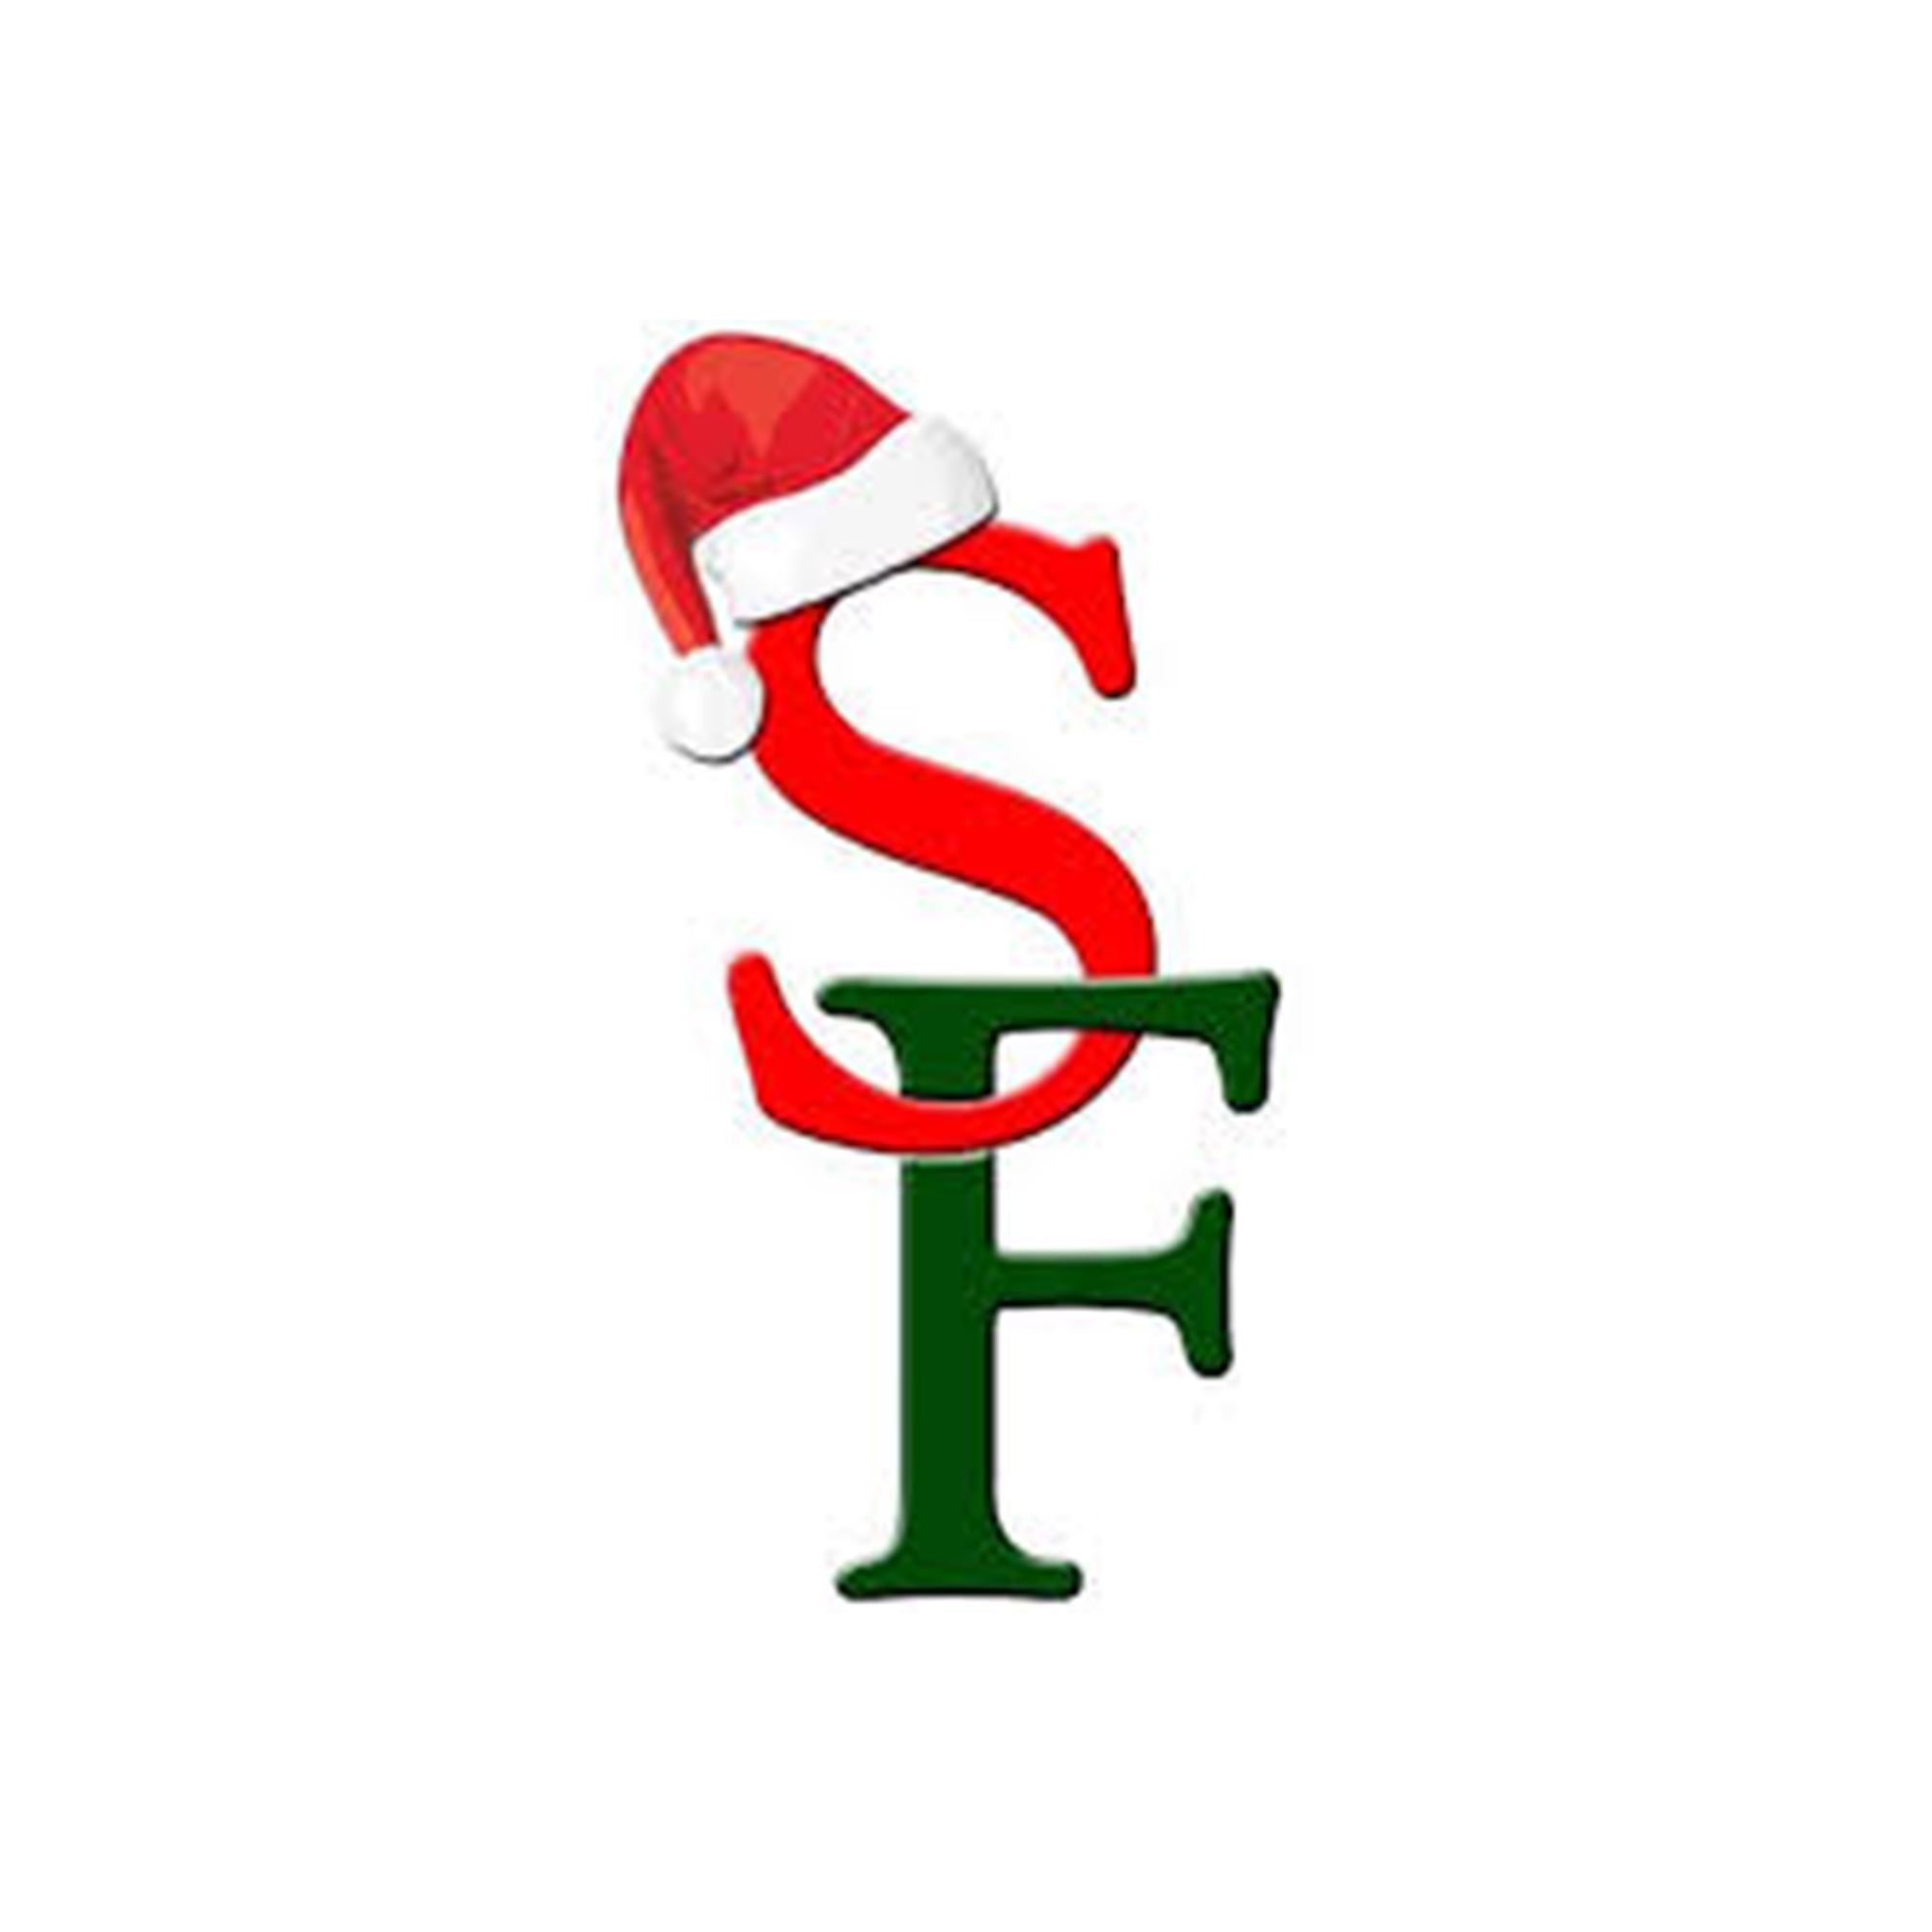 SANTA FOUNDATION     Pat Timmons' grandparents started the Santa Foundation over 30 years ago and Pat has been helping ever since he could, he even was the designer of the logo. The Santa Foundation was established to fulfill one goal. That goal was to provide gifts for families in need during the Holidays and year round.